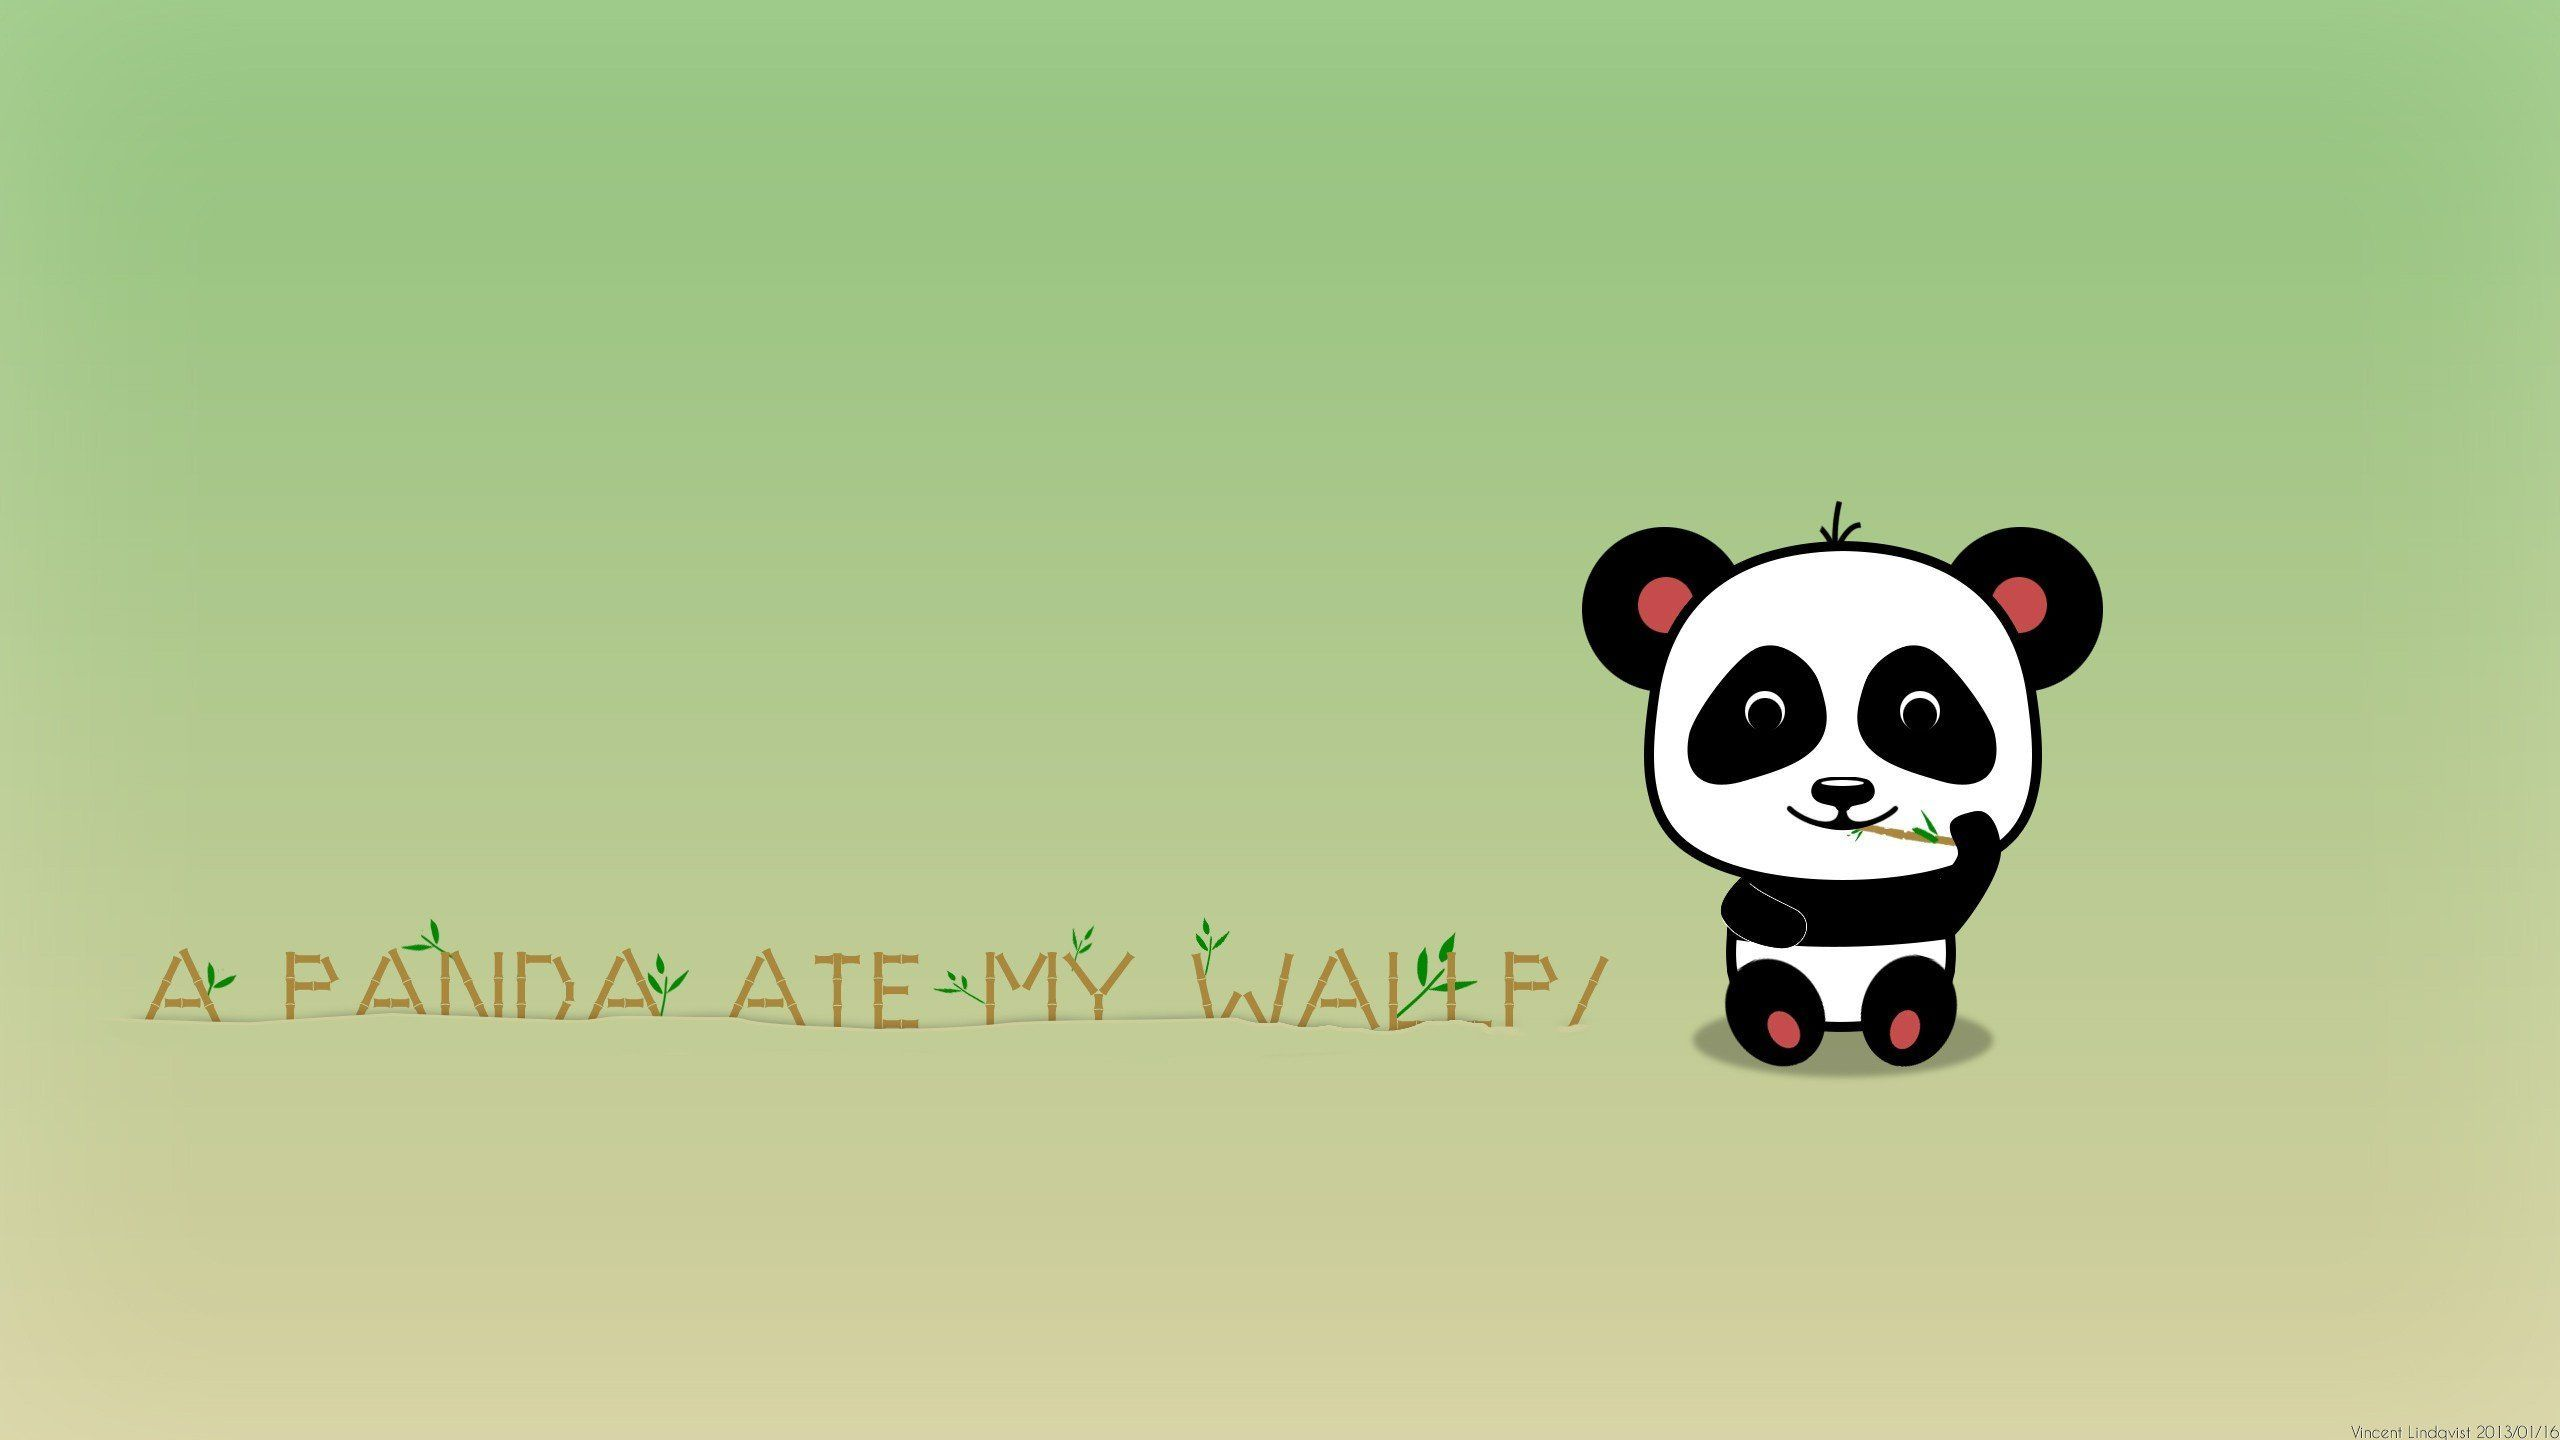 Cartoon Panda Wallpaper - WallpaperSafari